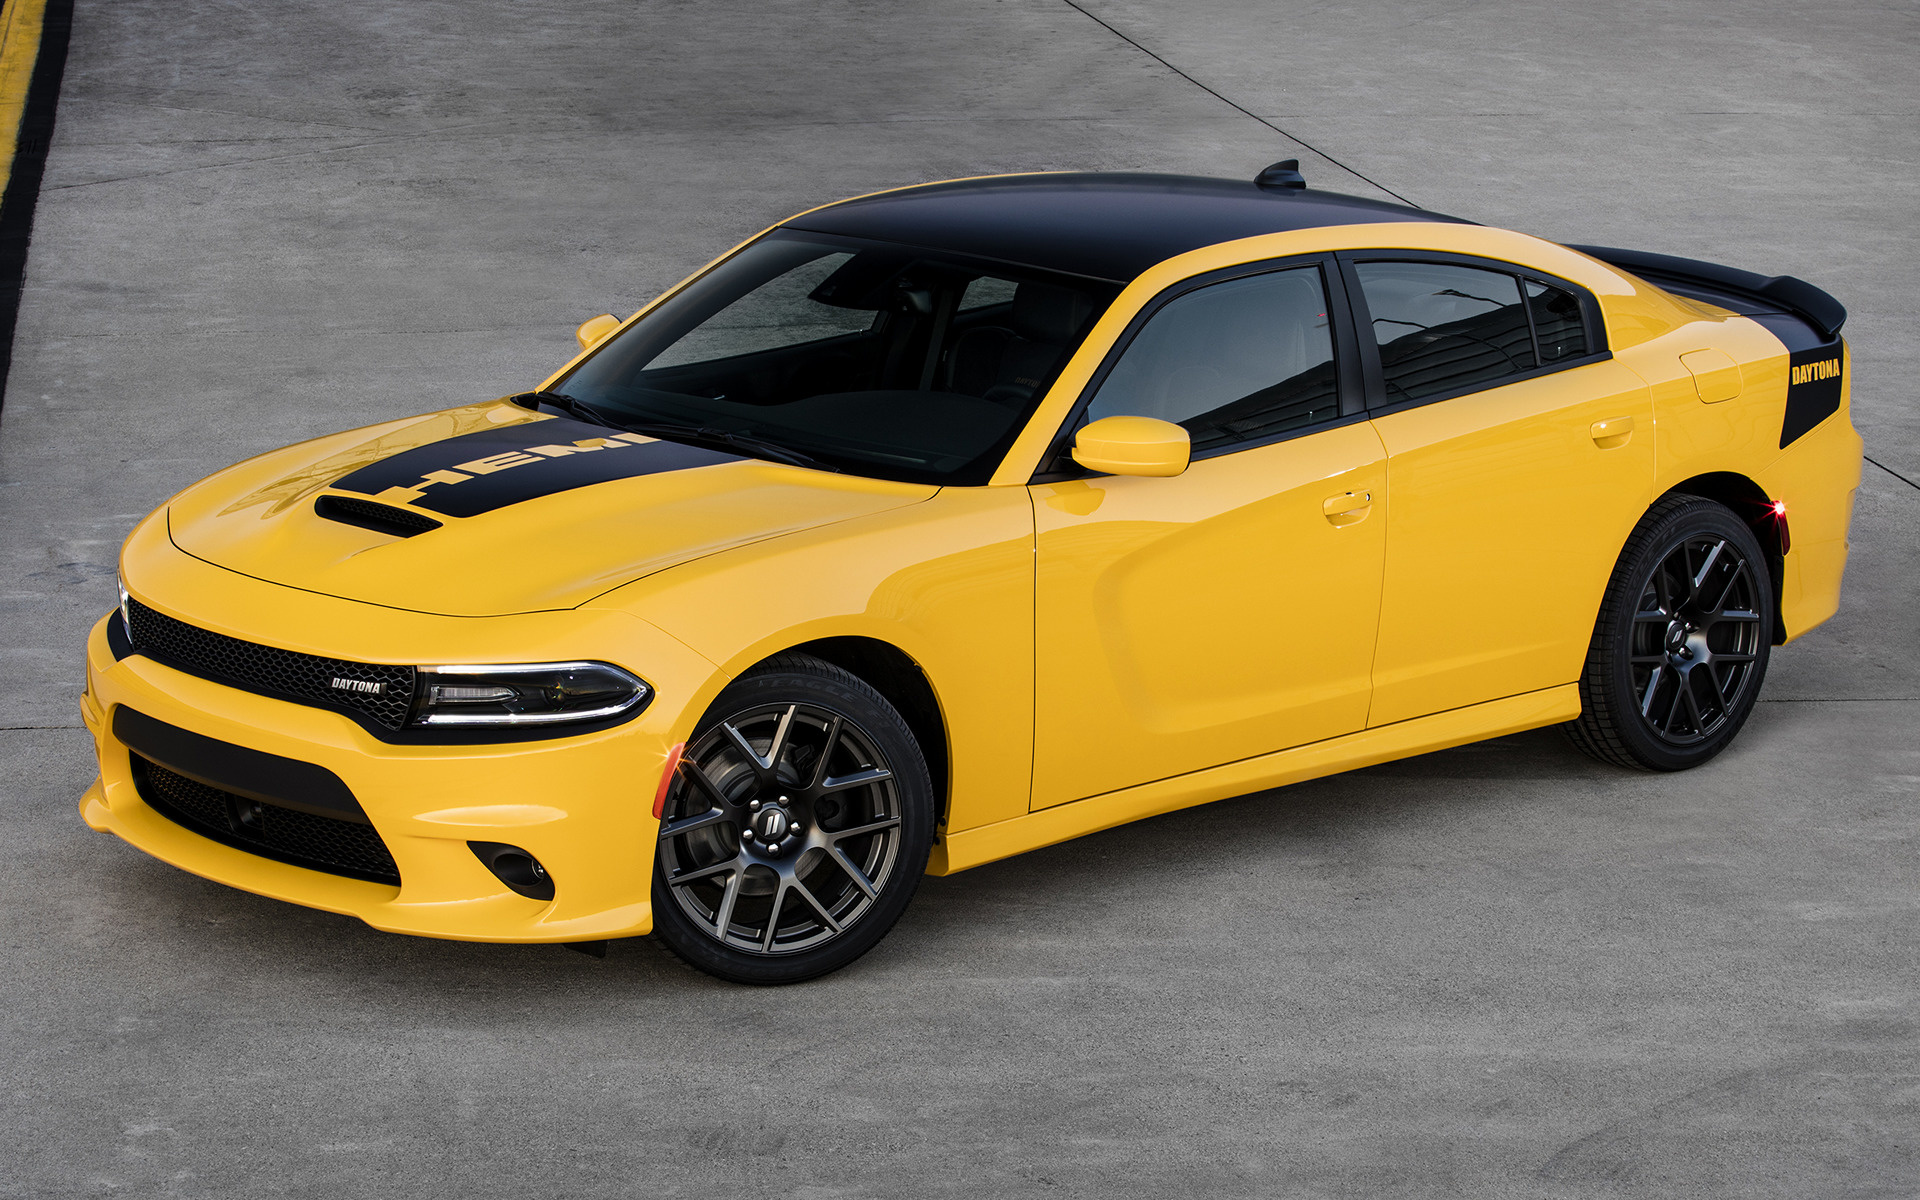 2018 Charger Concept >> Dodge Charger Daytona (2017) Wallpapers and HD Images - Car Pixel